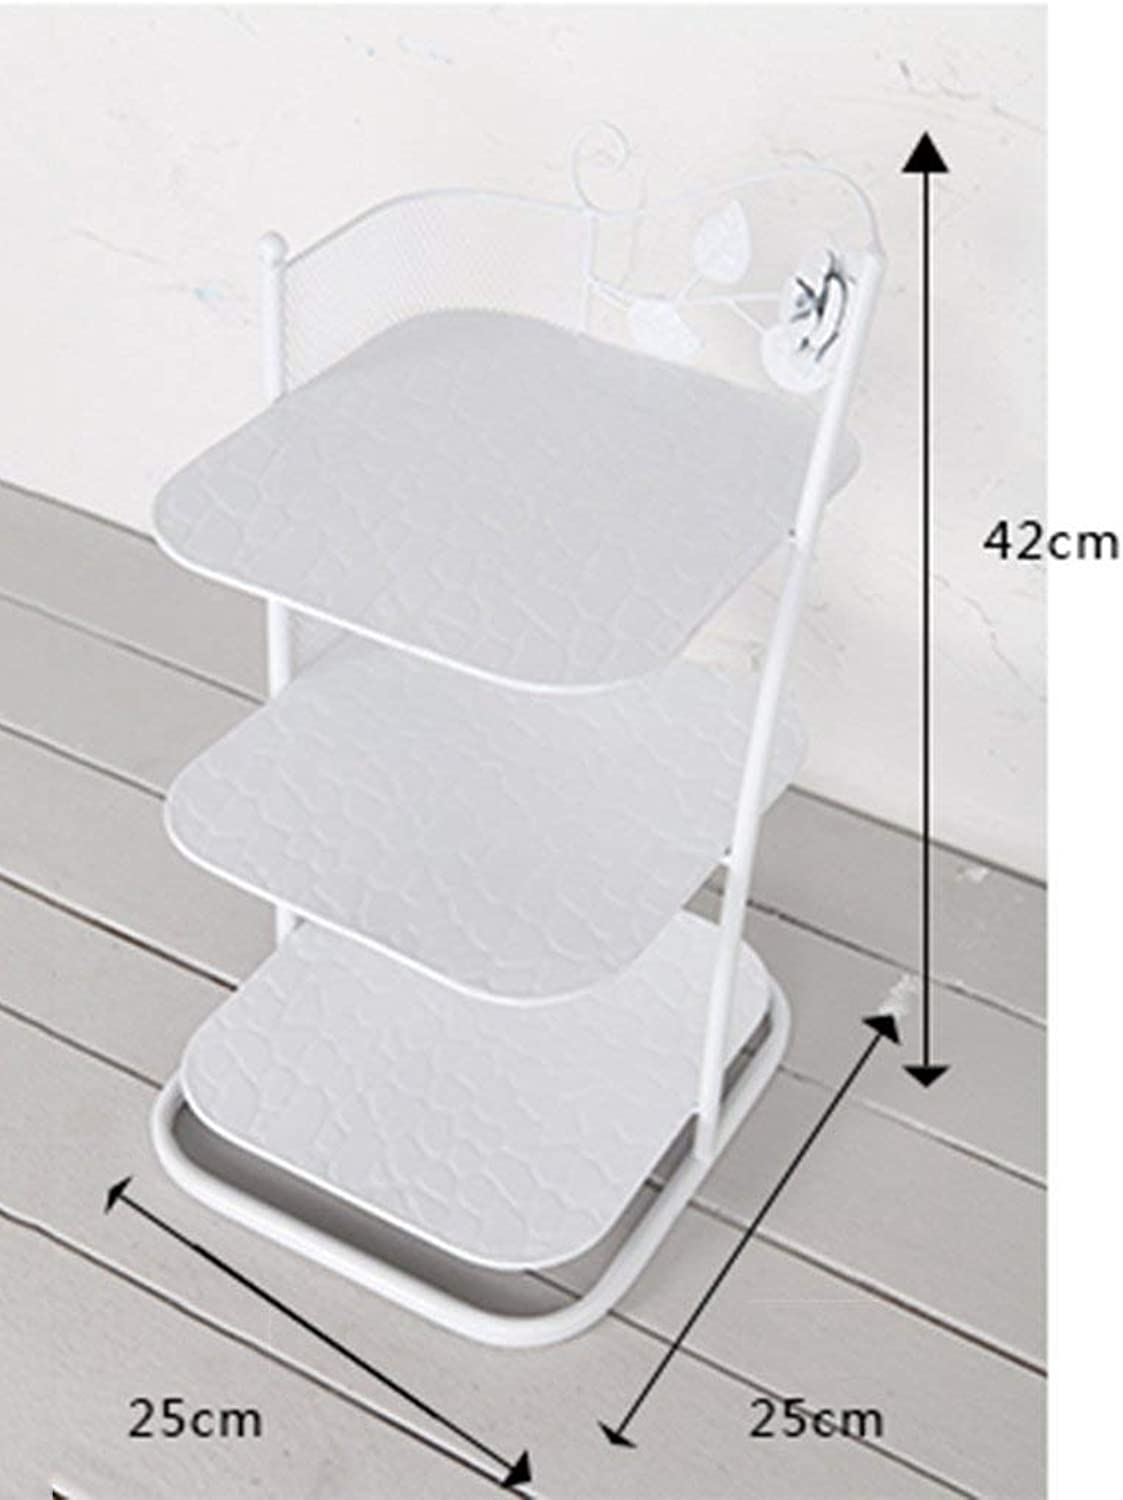 AO-Stool Small Narrow shoes Rack Metal White Black for Boots Balcony Entrance Corner Entrance 3 to 7 Tier Stackable Shelf (color   White, Size   3 Tier)